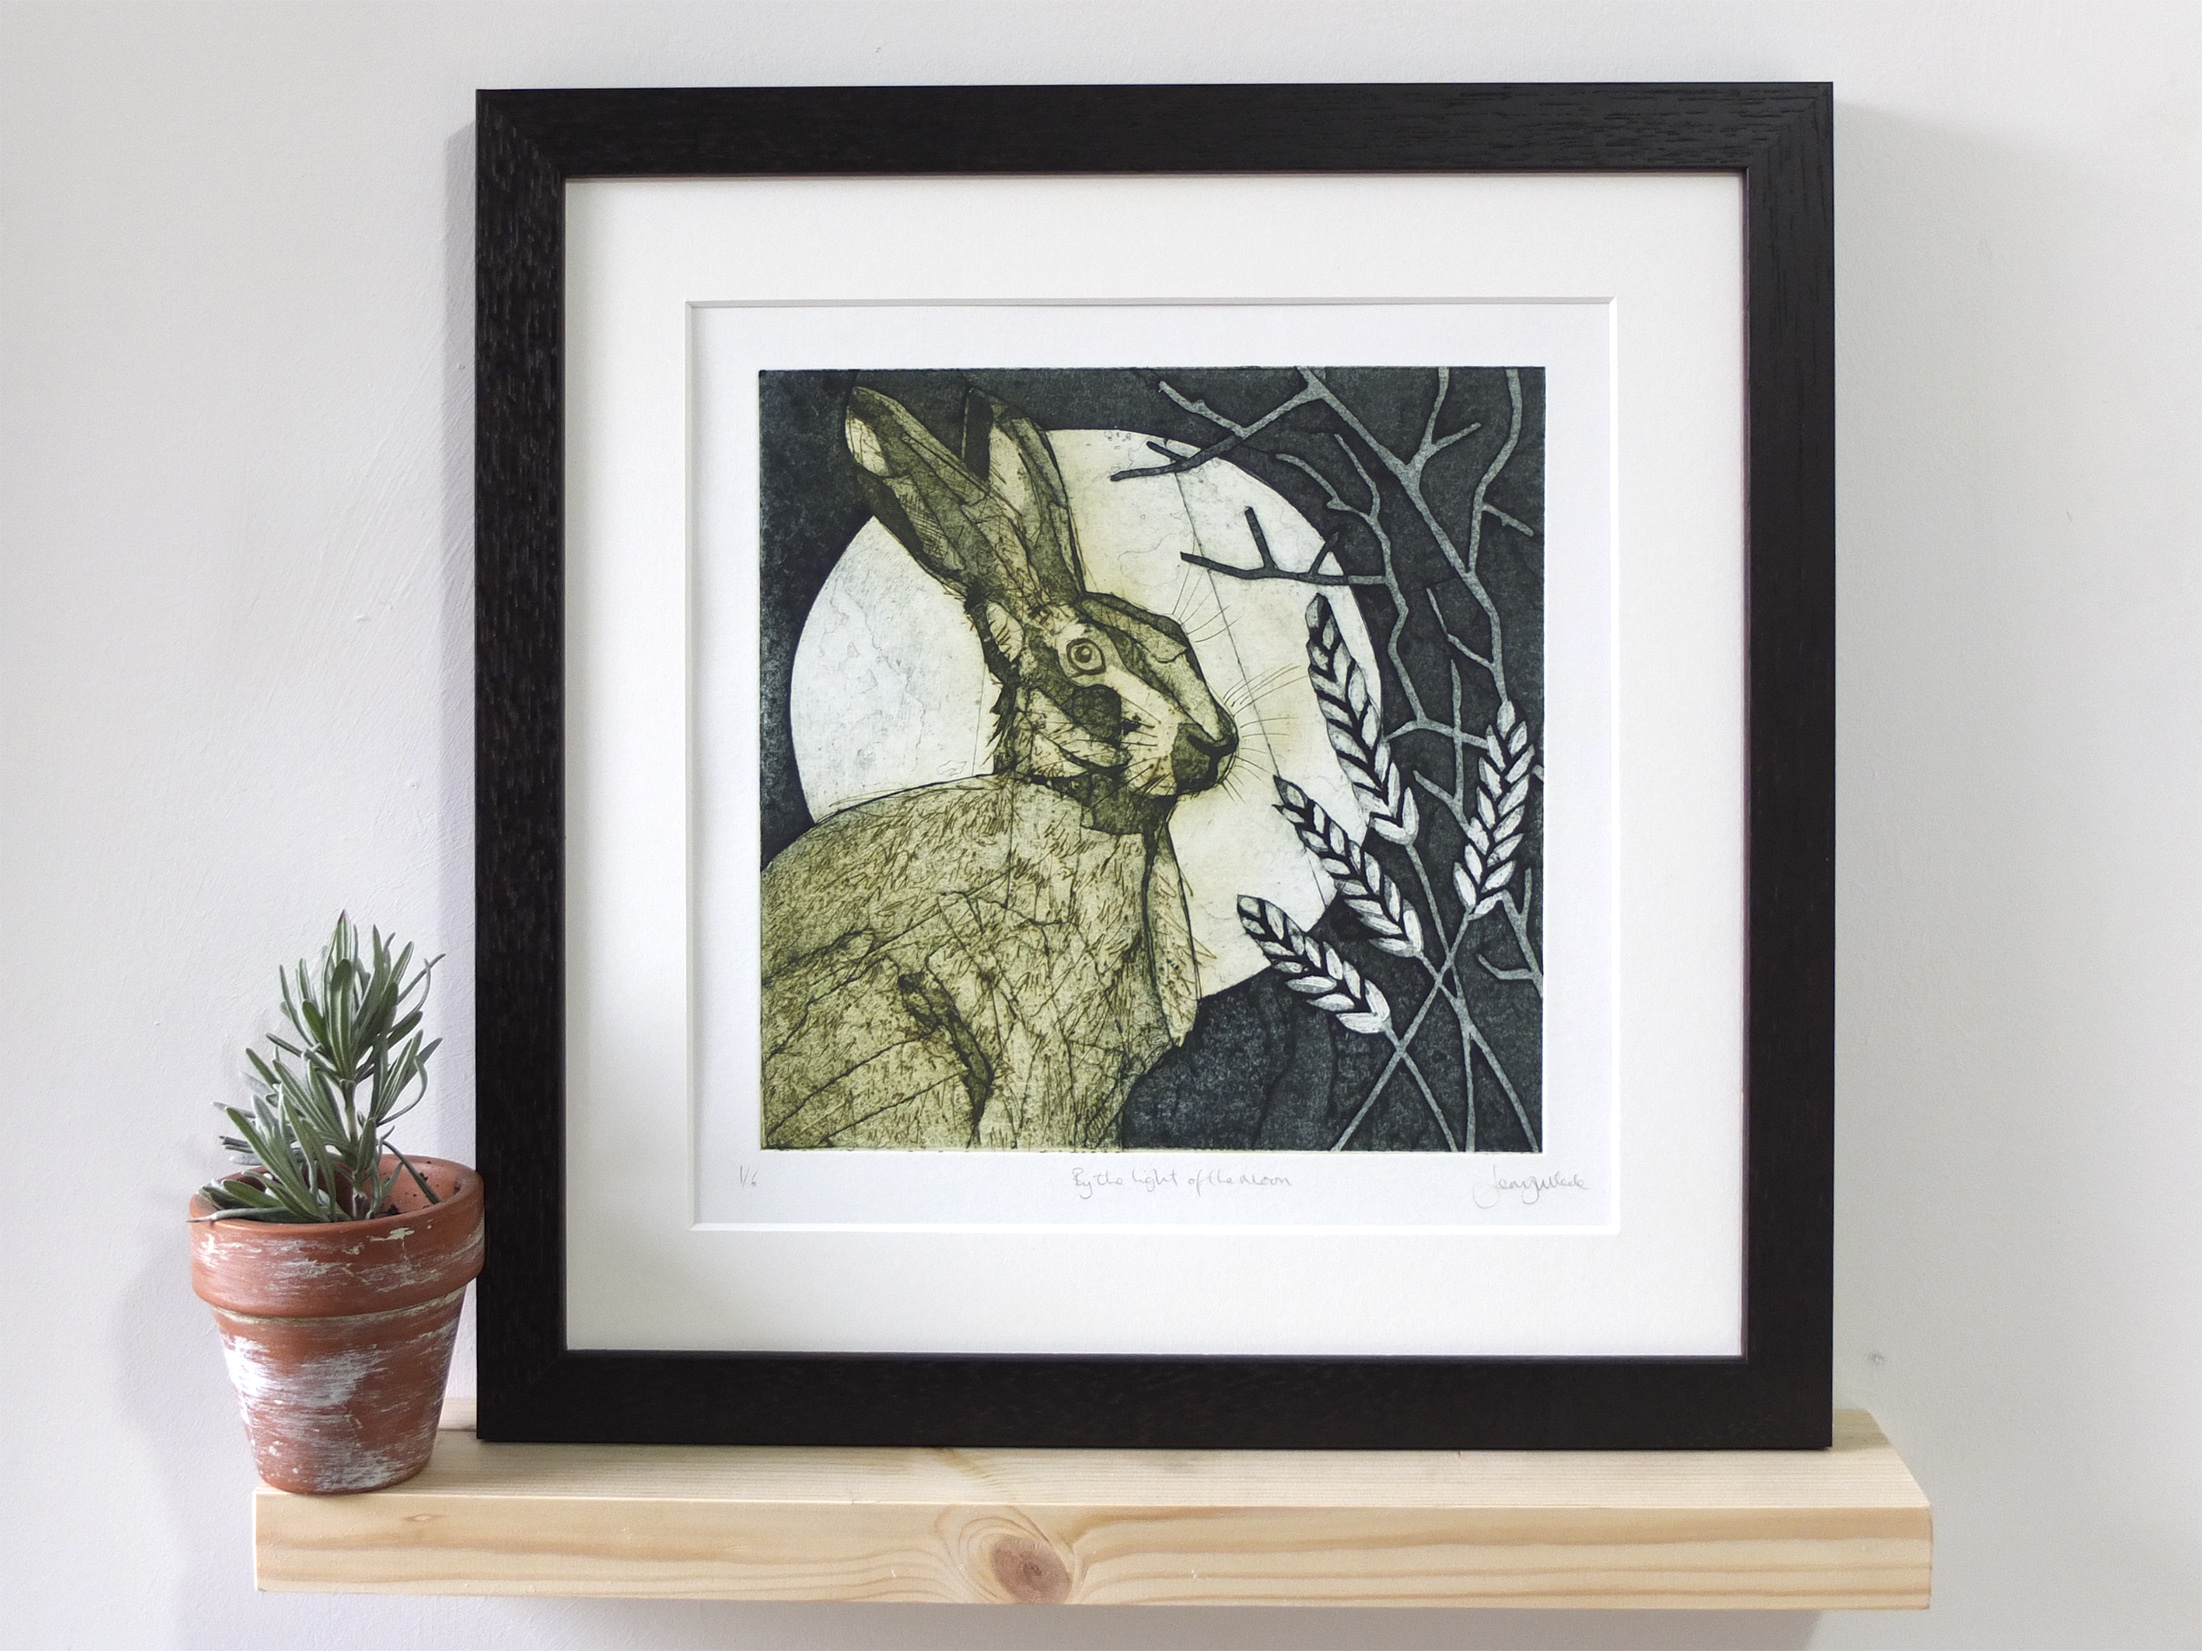 Hare and moon. 2017. Collograph & drypoint. Edition of 6. SOLD OUT